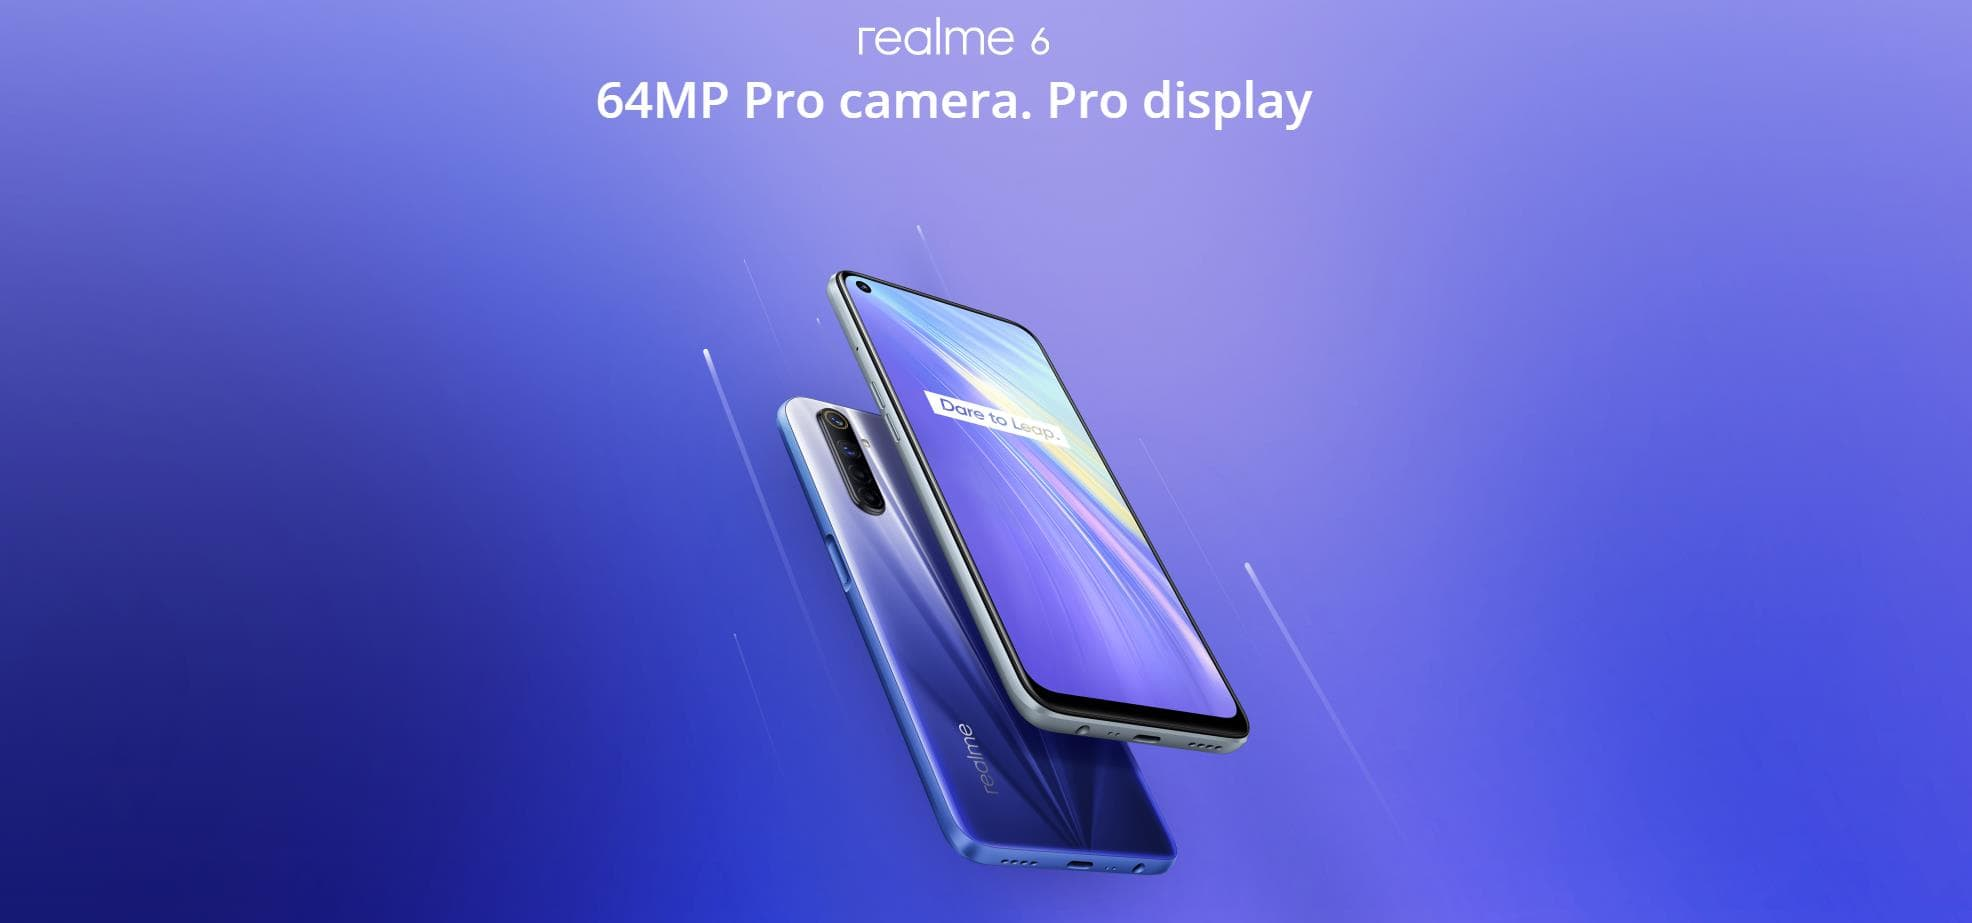 Realme 6 Review Better Value For Money Than The Realme 6 Pro Mighty Gadget Blog Uk Technology News And Reviews